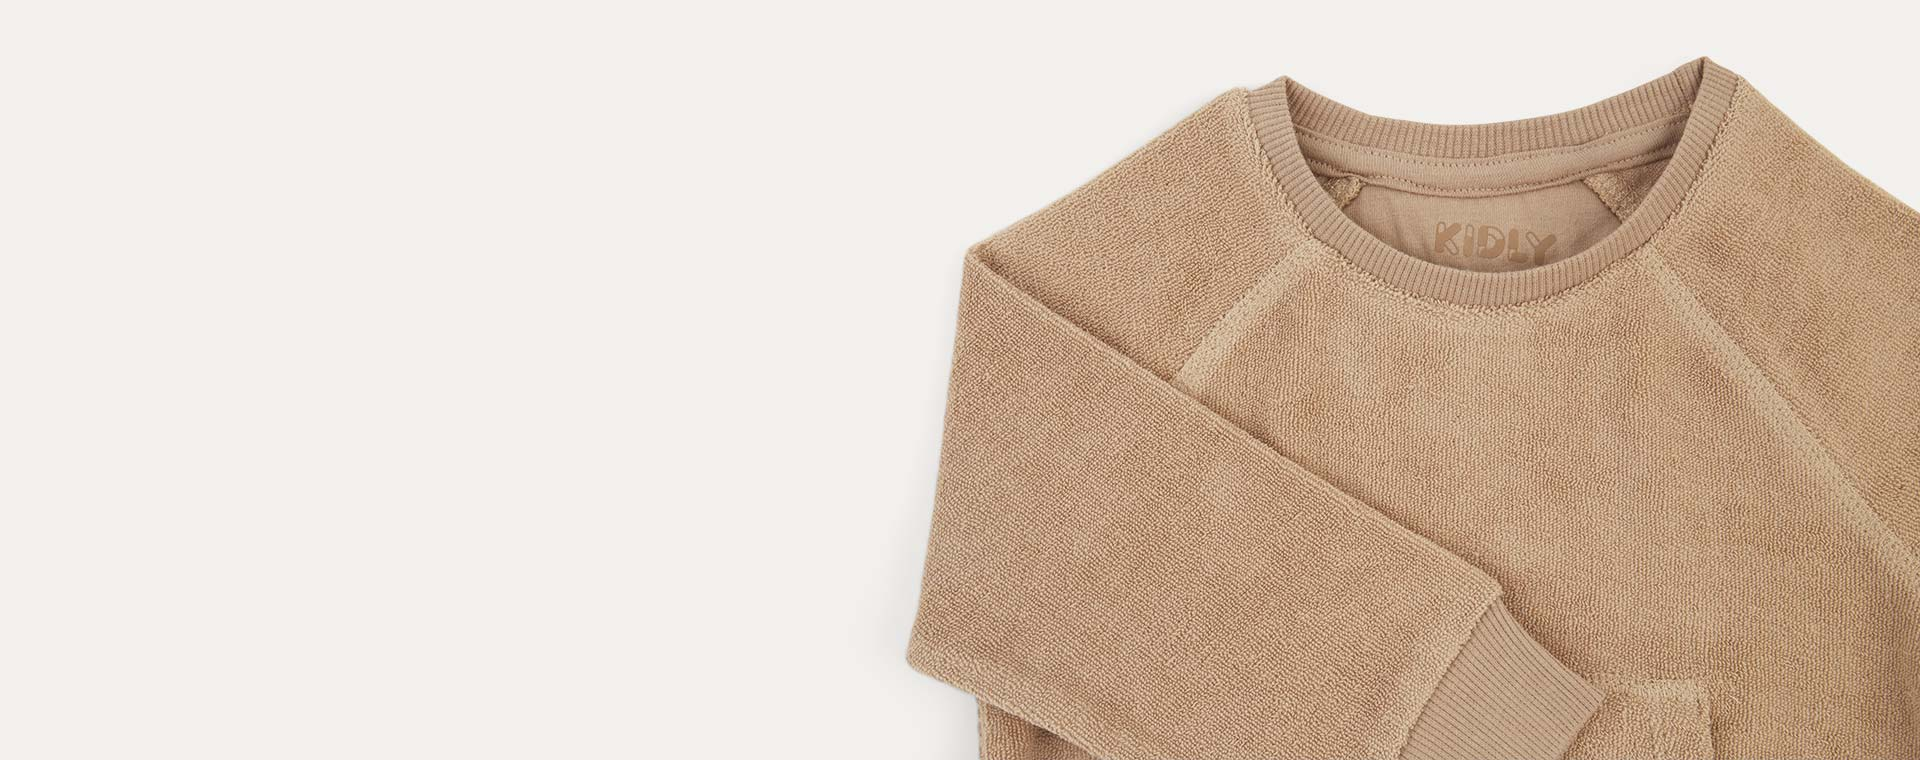 Natural KIDLY Label Towelling Sweatshirt